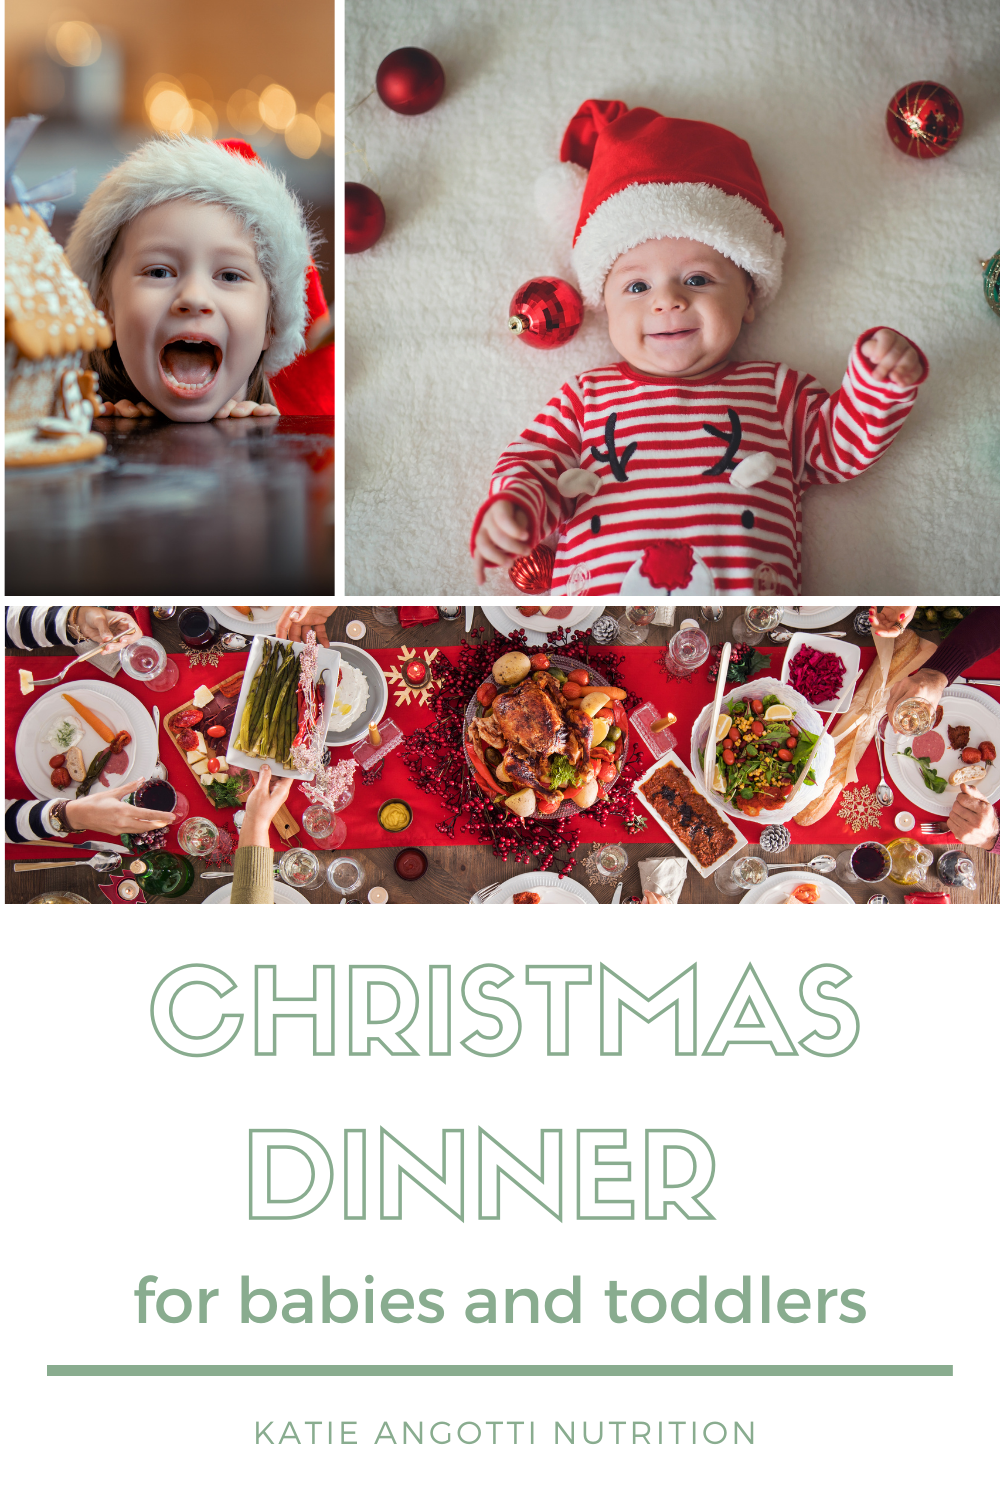 Baby in christmas outfit, little girl with christmas food, christmas food on a table